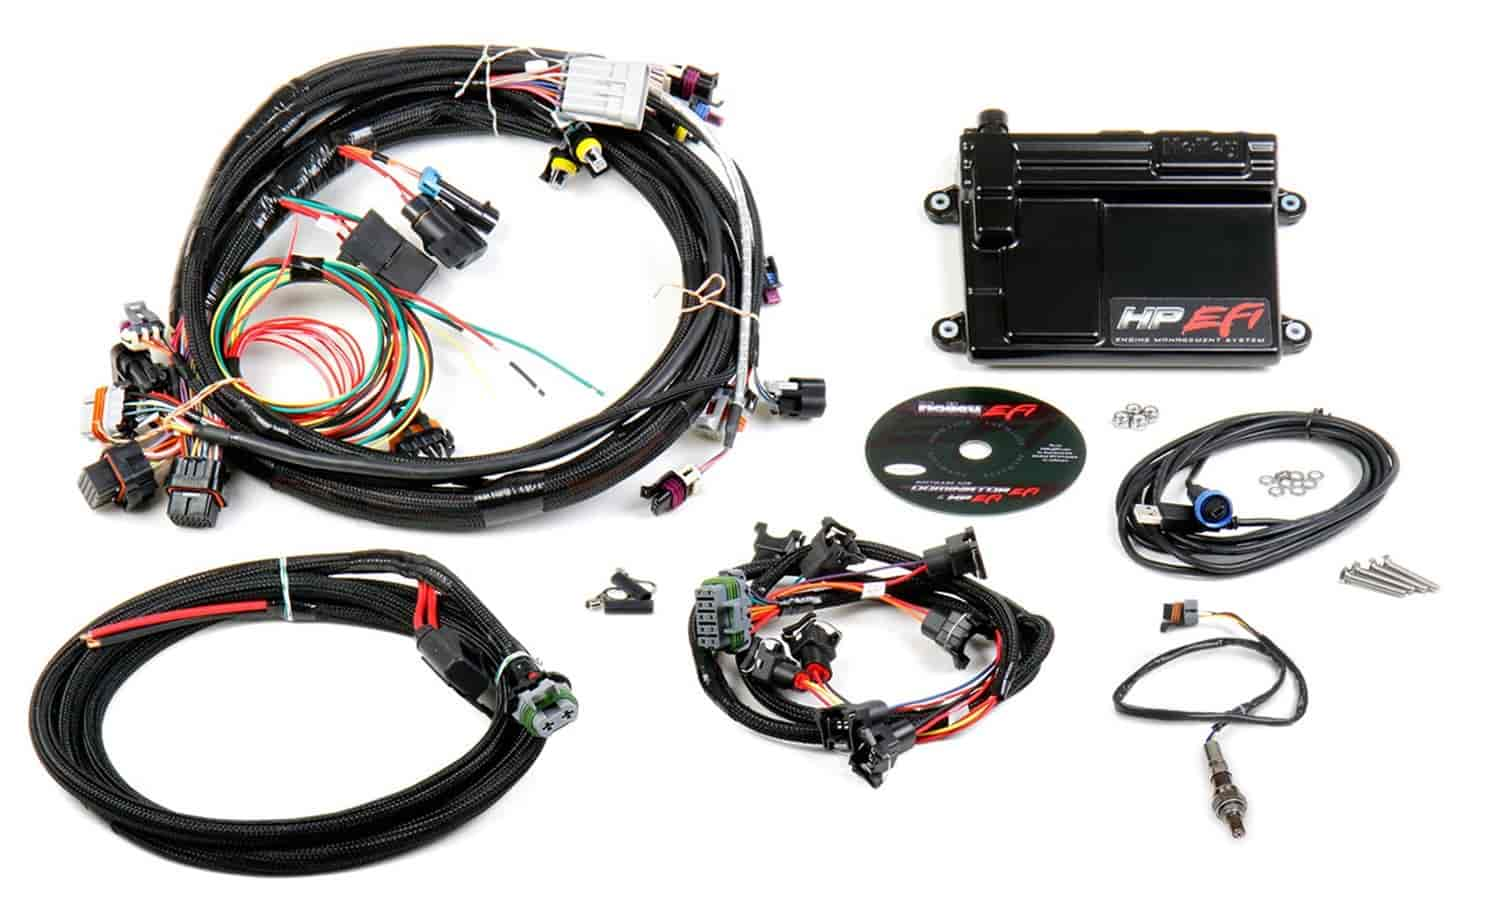 holley 550 602n hp efi ecu & harness kit gm ls1 ls6 jegs 2002 ls1 engine wiring diagram ls1 computer and wiring harness #8